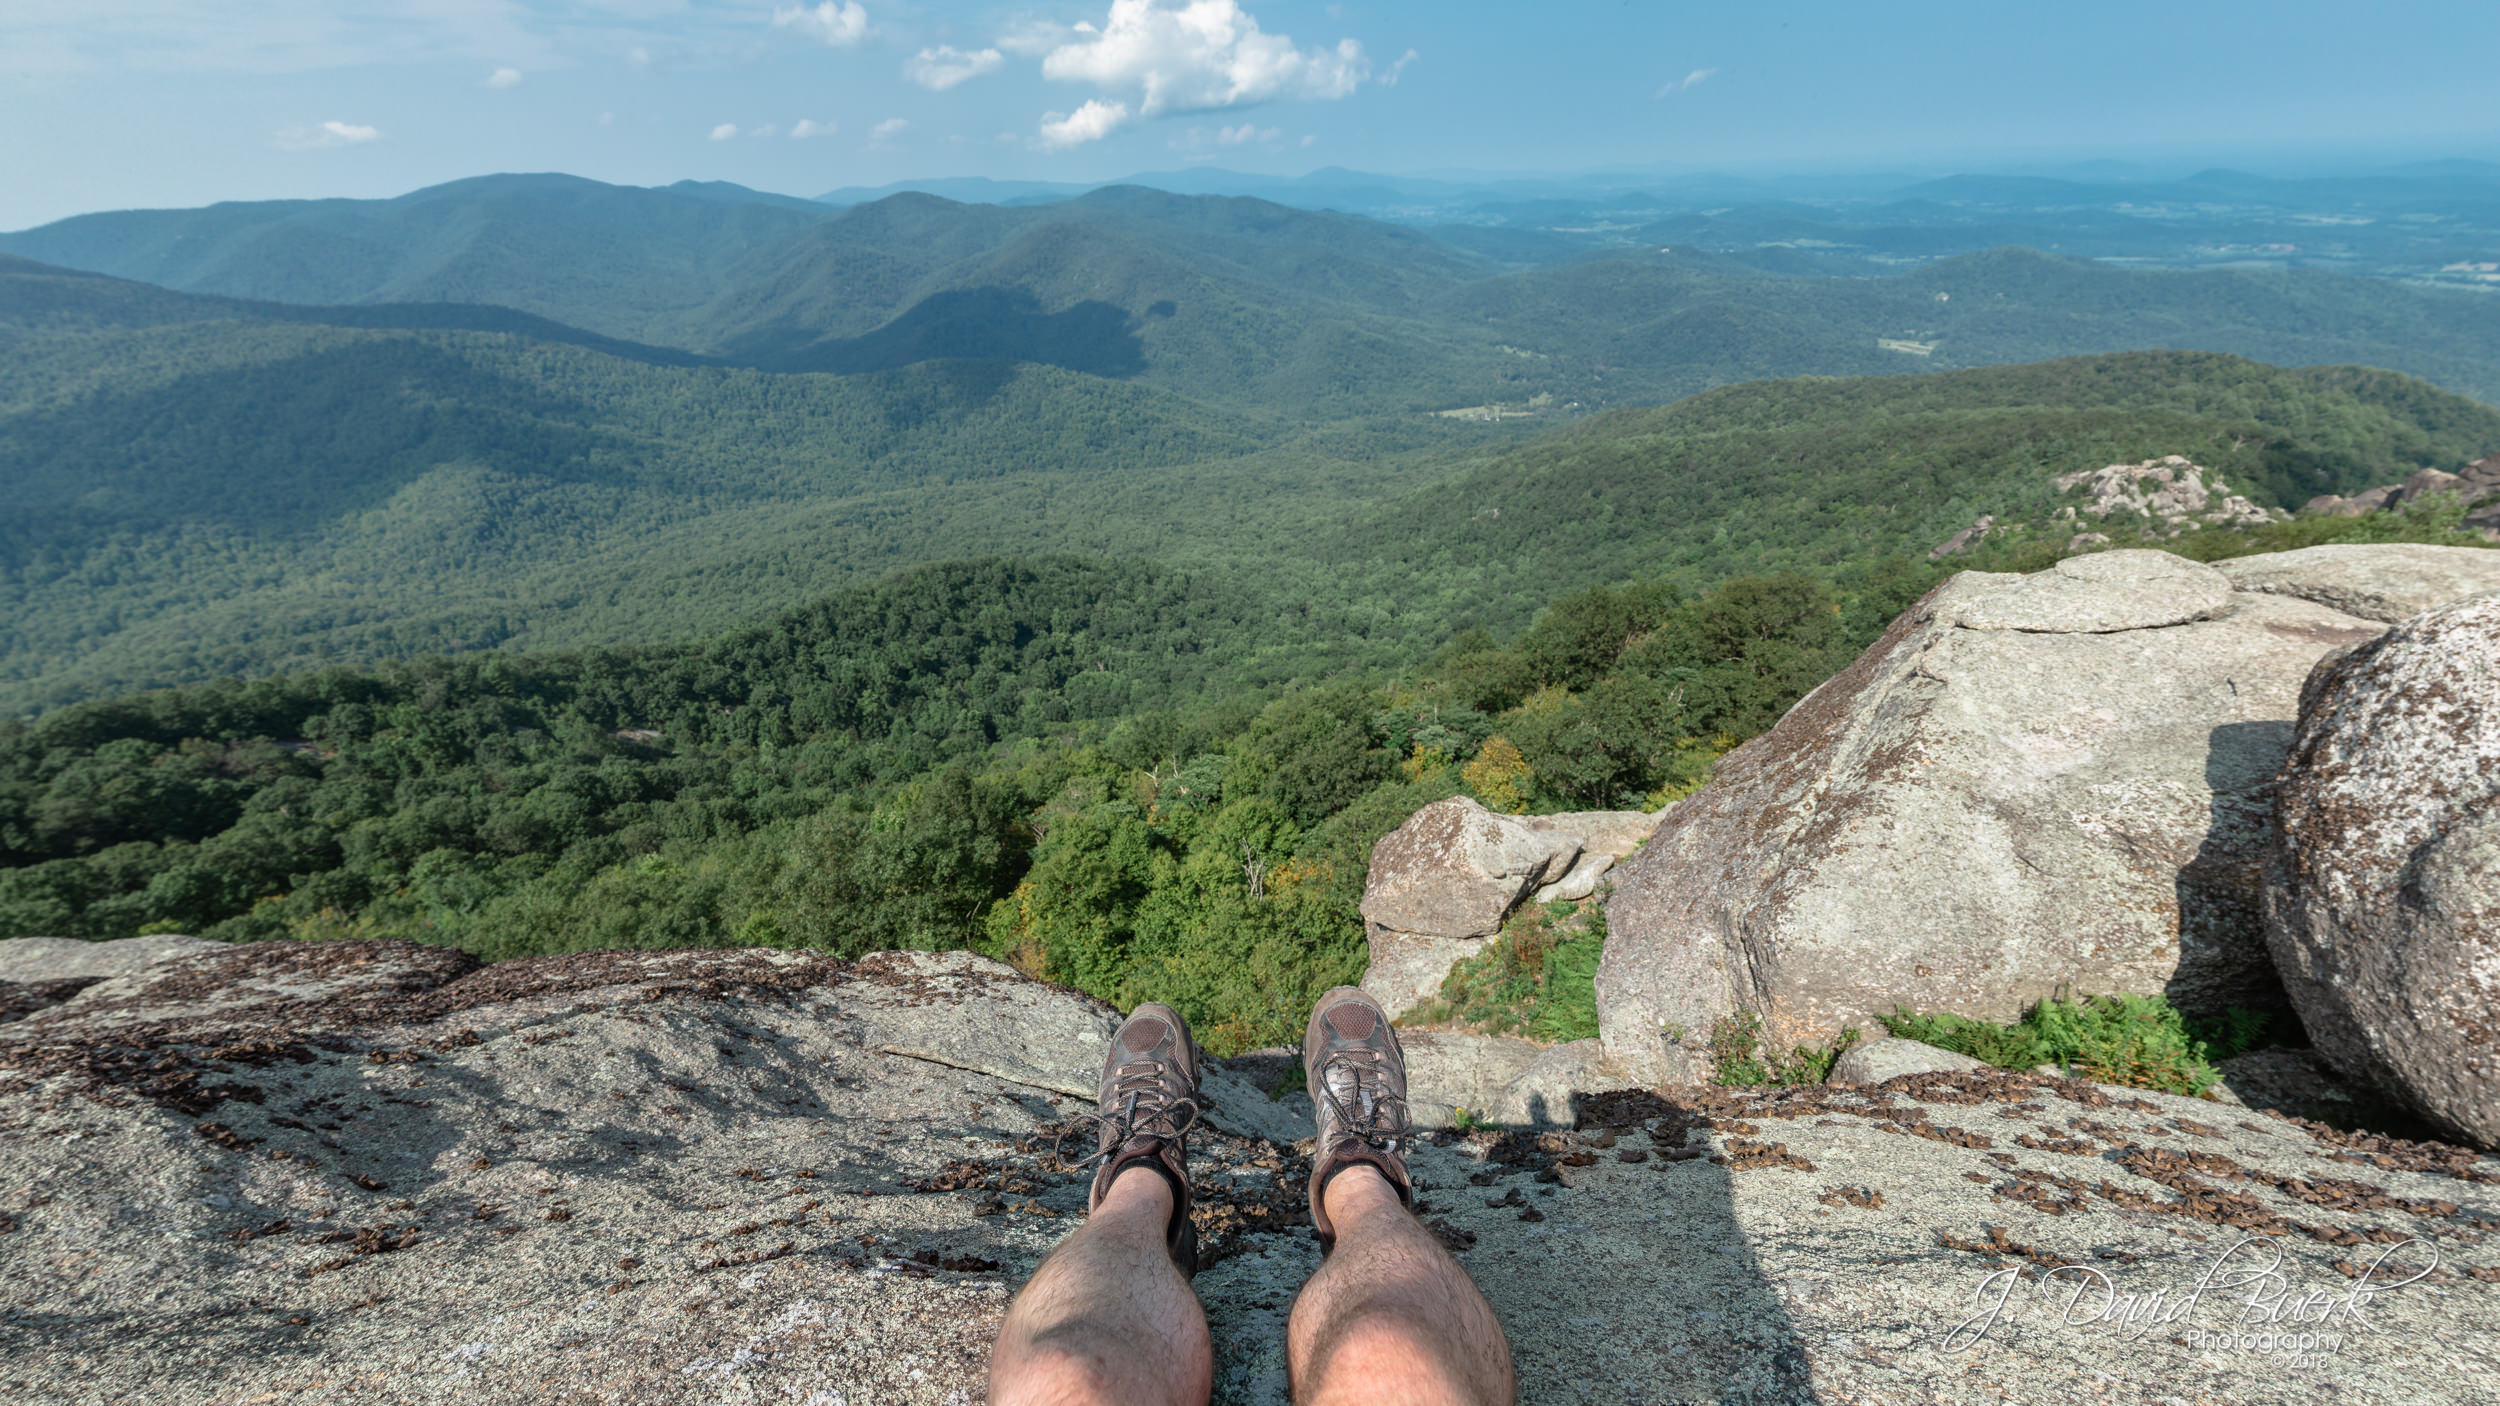 View from atop Old Rag Mountain in Shenandoah, Virginia. This would mark the first time I hiked Old Rag since my knee injury over a year prior.